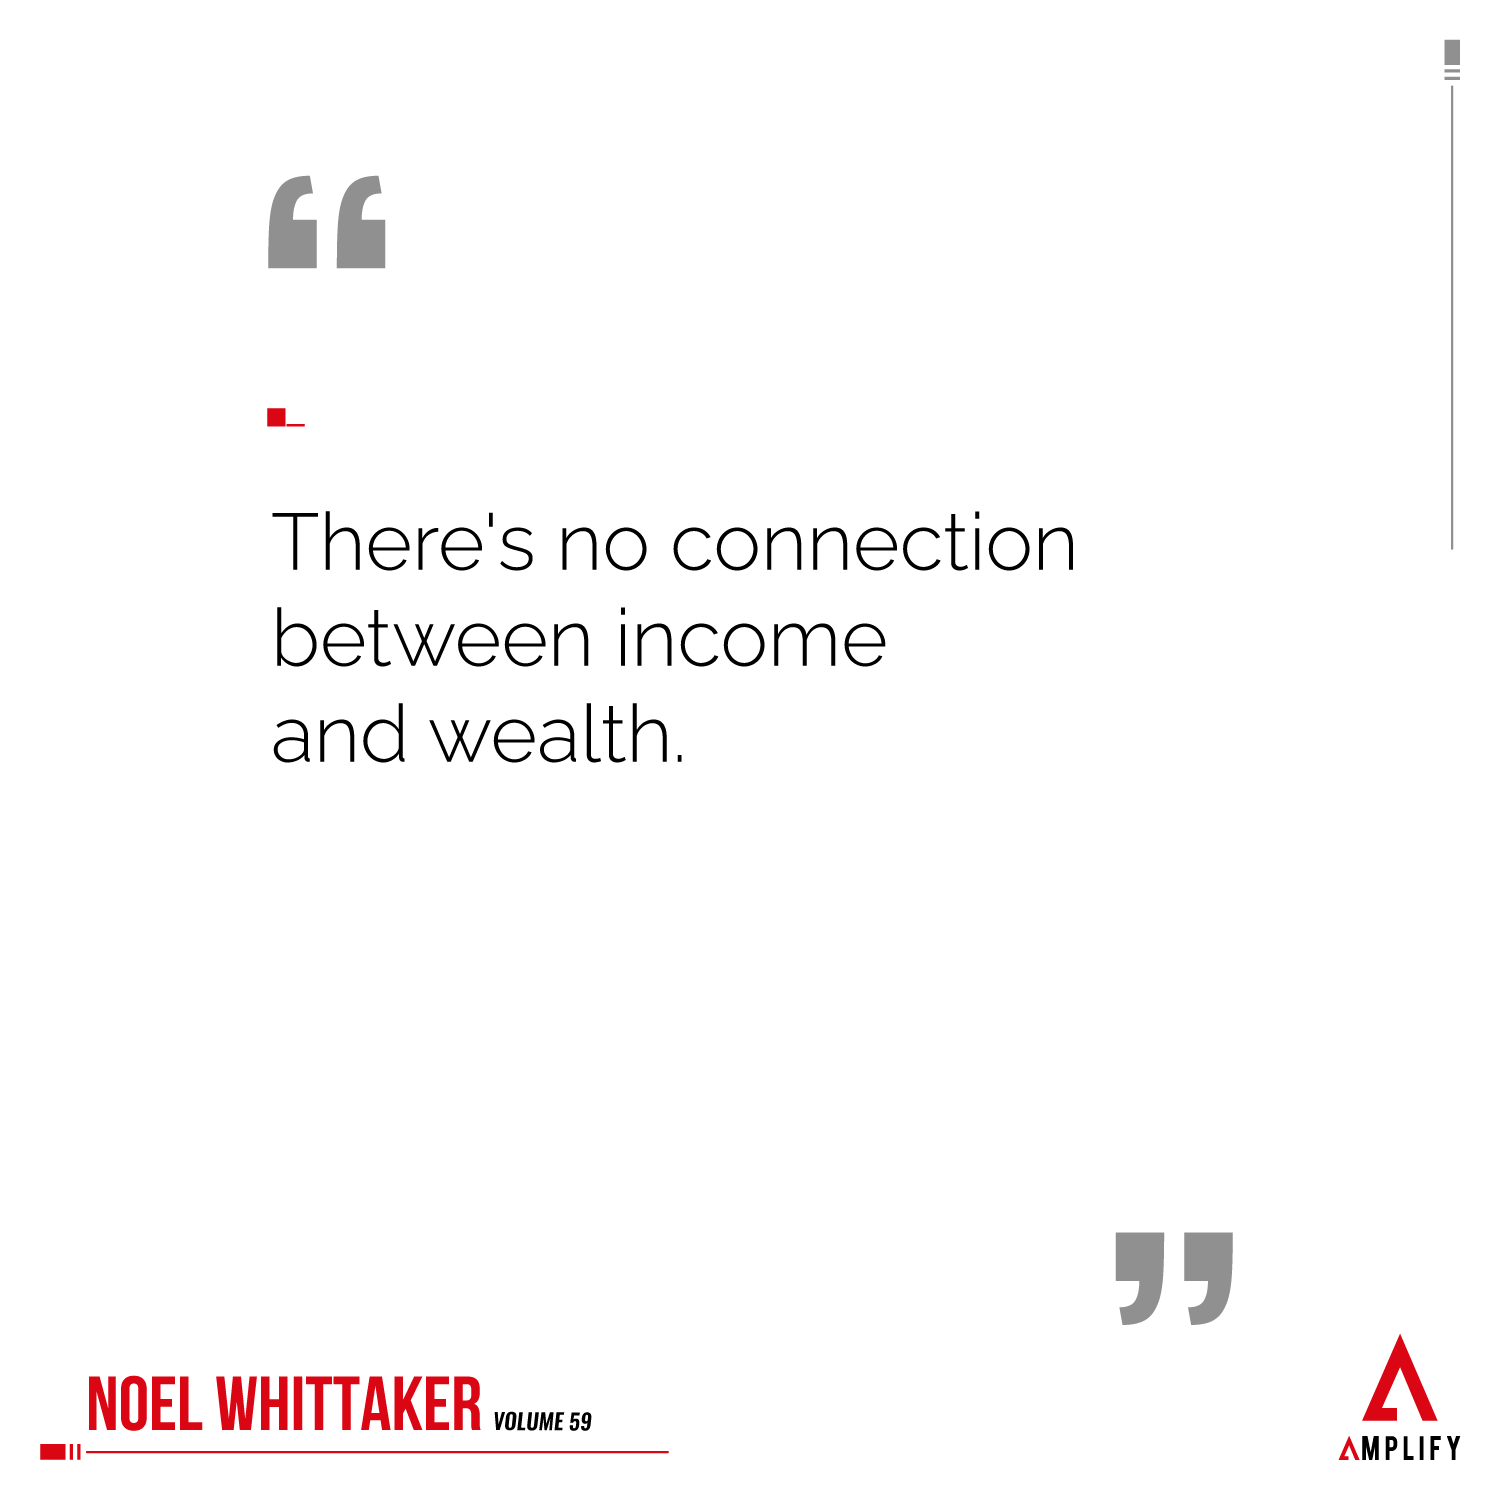 Quote: There's no connection between income and wealth.